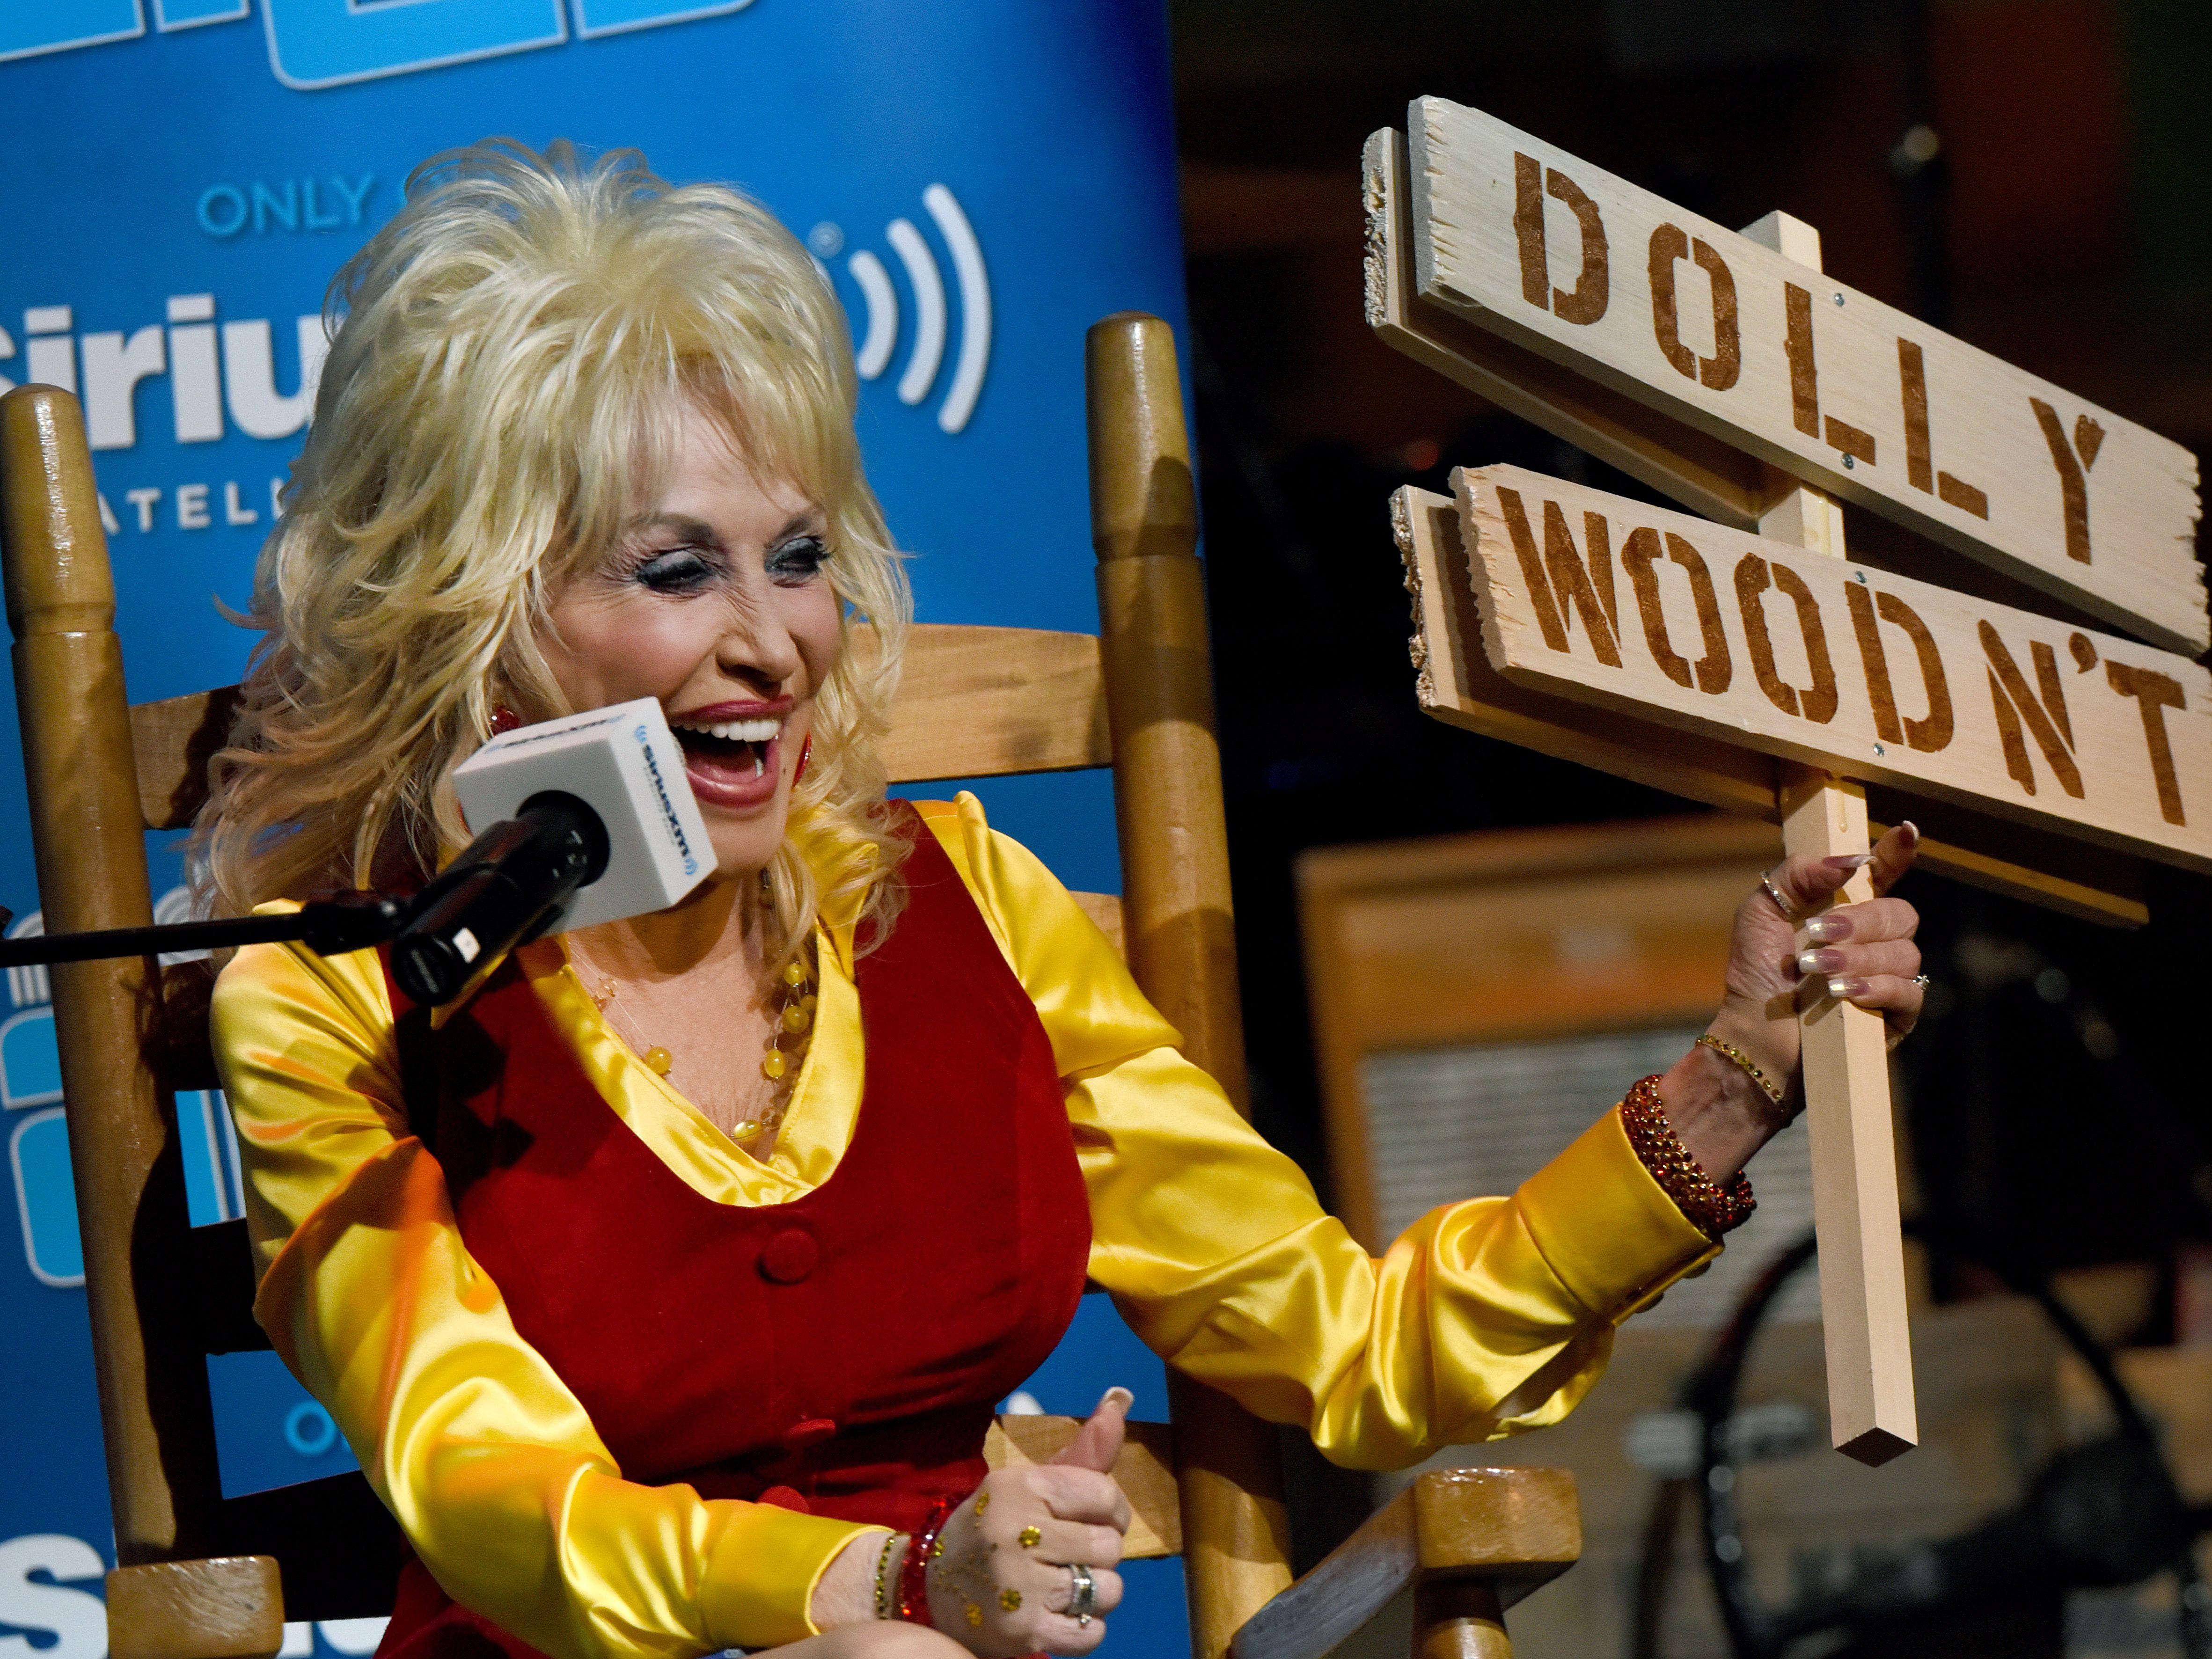 "Dolly Parton takes part in a game of ""Dolly Wood or Dolly Wouldn't"" with SiriusXM satellite radio host Andy Cohen Friday, May 6, 2016, at Dollywood. SiriusXM radio subscribers submitted questions for Parton with the winners invited to pose their questions during the show."